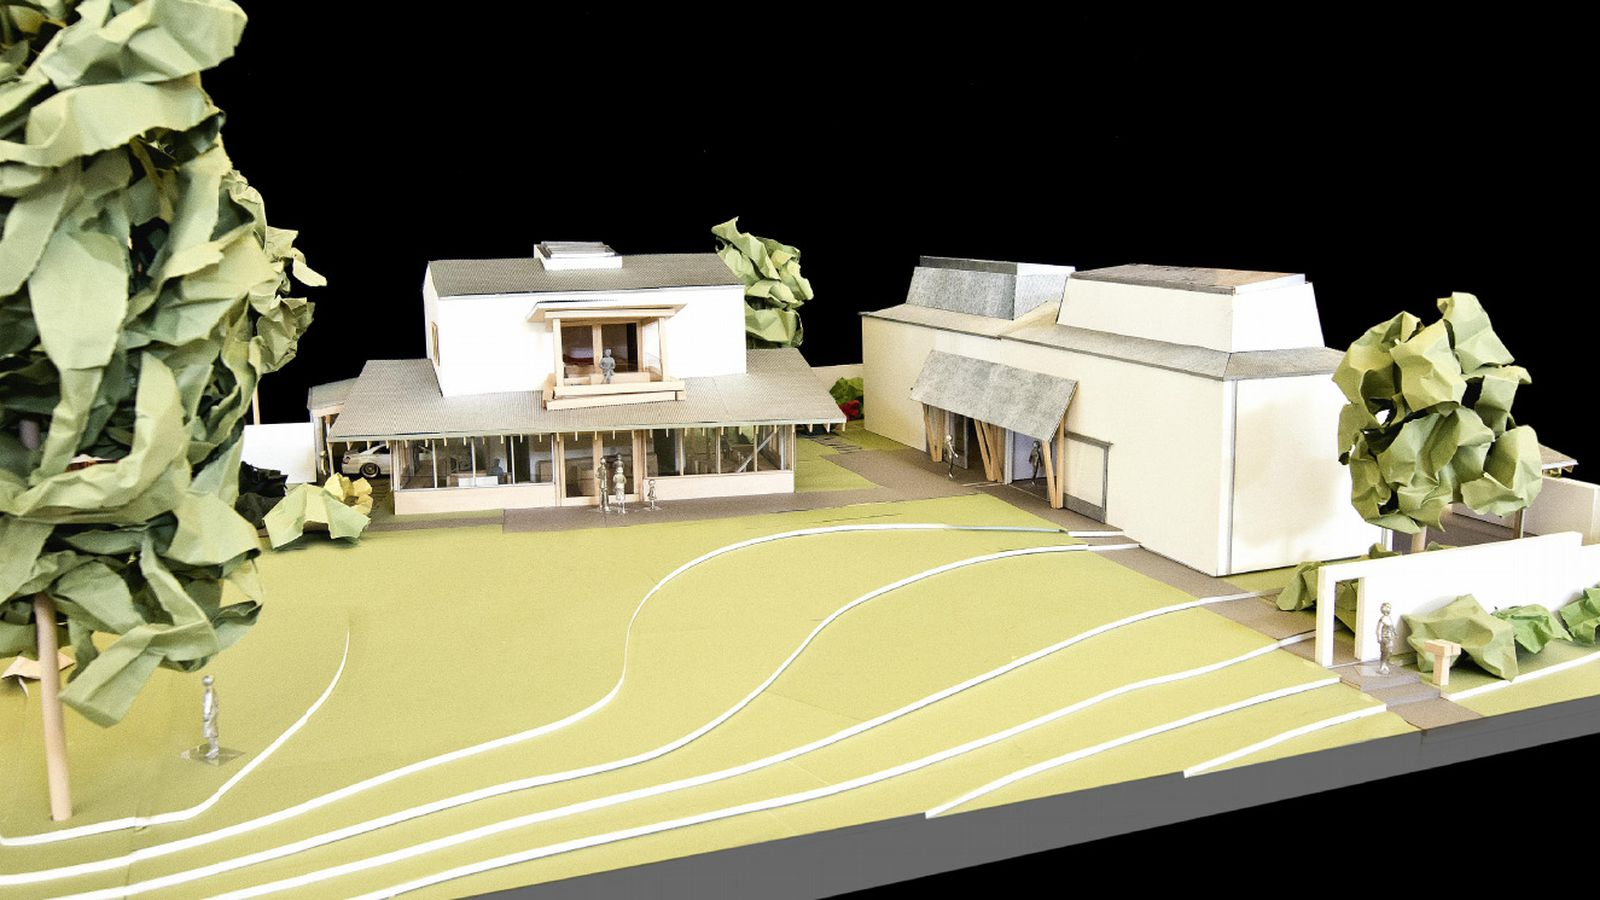 Is frank gehry finally building his dream home curbed la - Building a new home ...